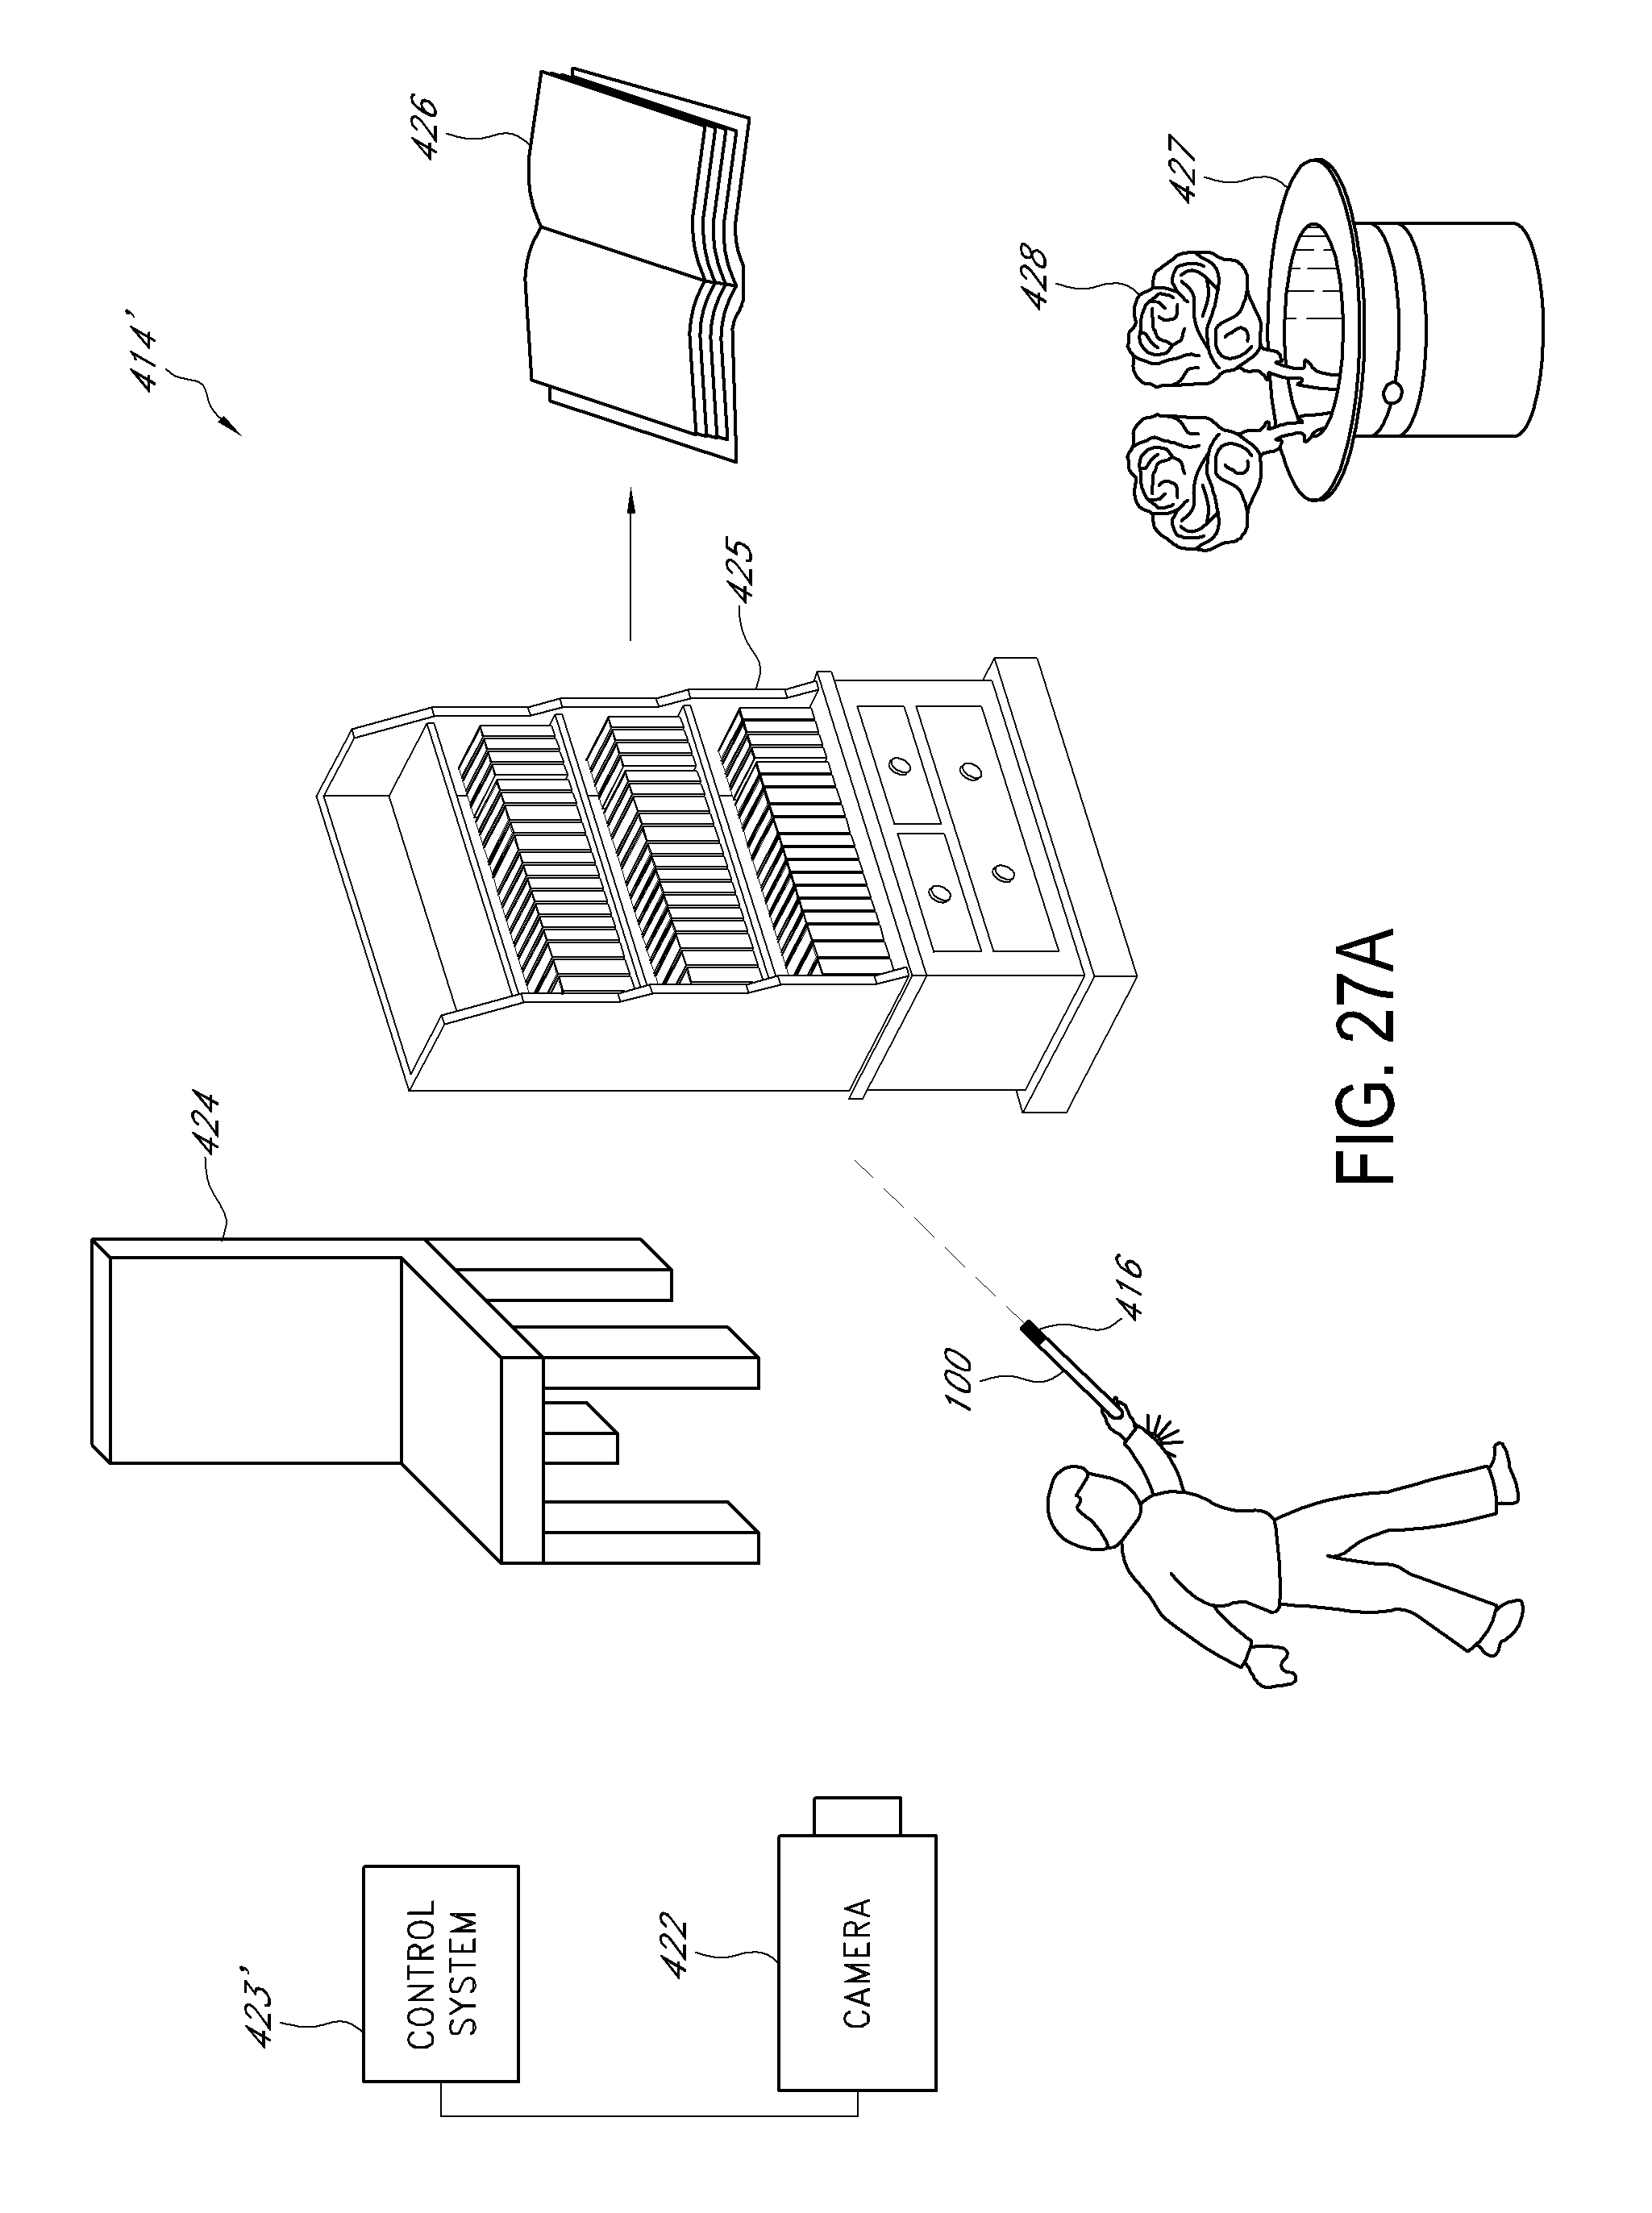 Patent Us 9039533 B2 Fish Simple Foil Circuits Series And Parallel Schematics Images